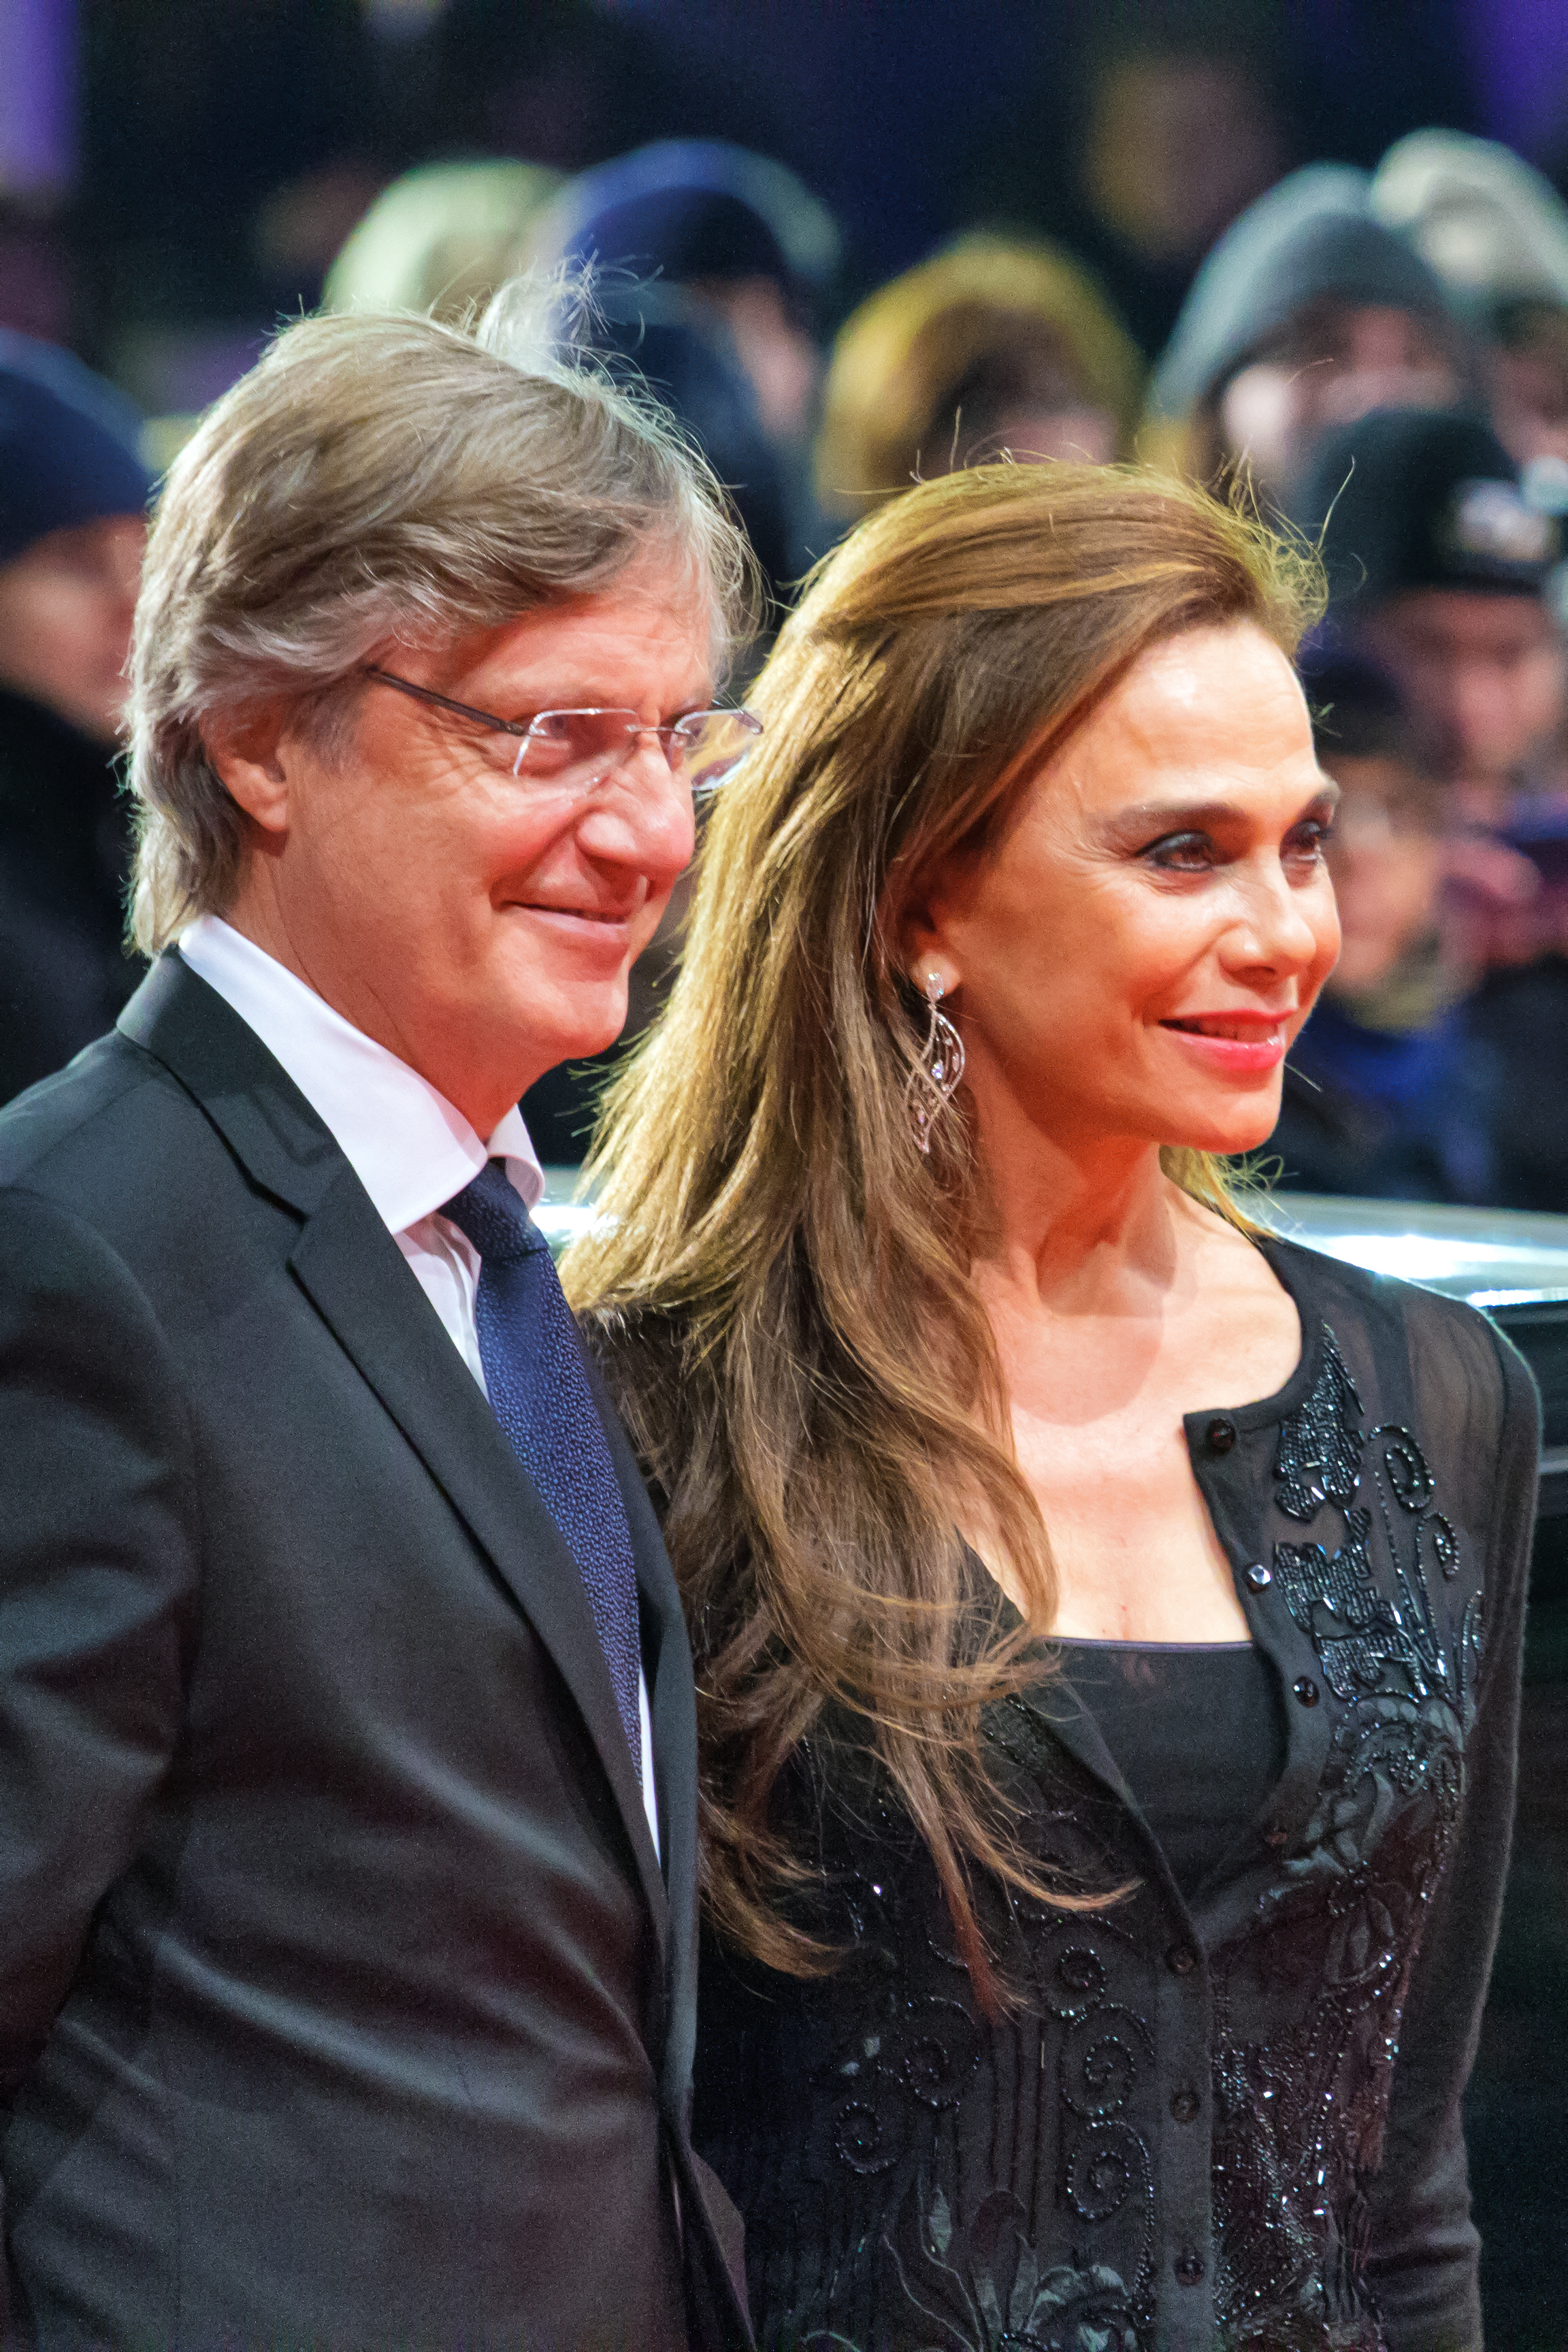 Hallström and wife Lena Olin at the [[63rd Berlin International Film Festival|2013 Berlin International Film Festival]]